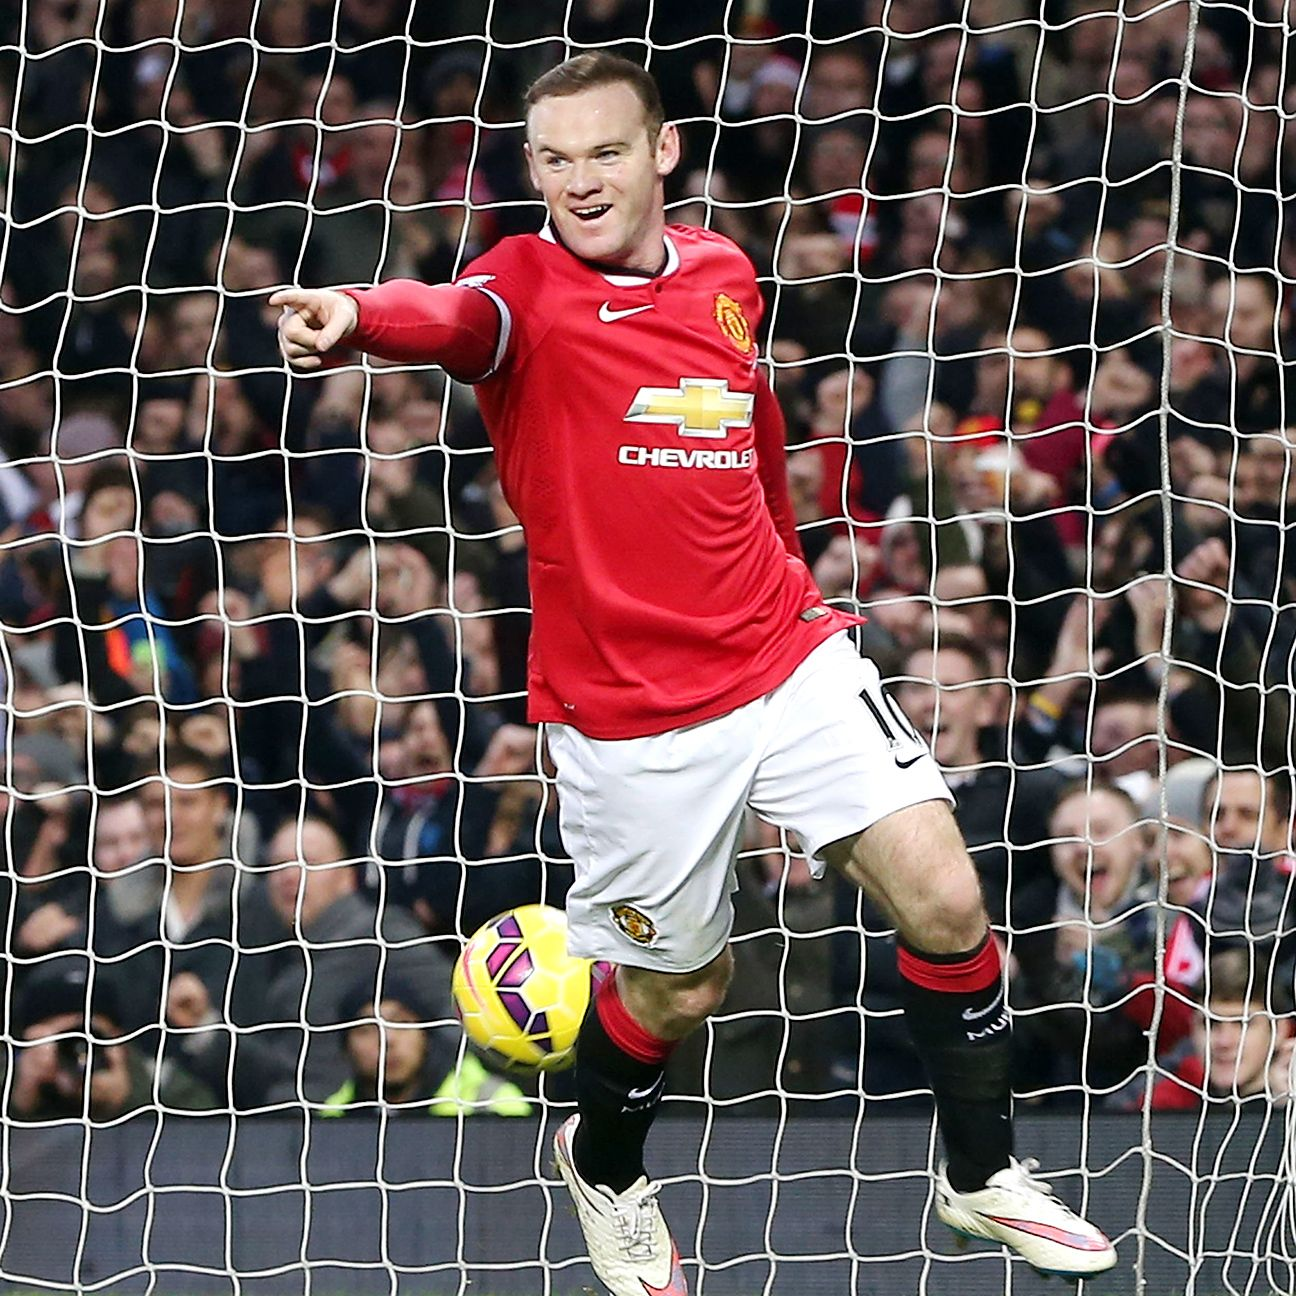 With Wayne Rooney leading the forward line, Manchester United has been unstoppable in recent weeks.